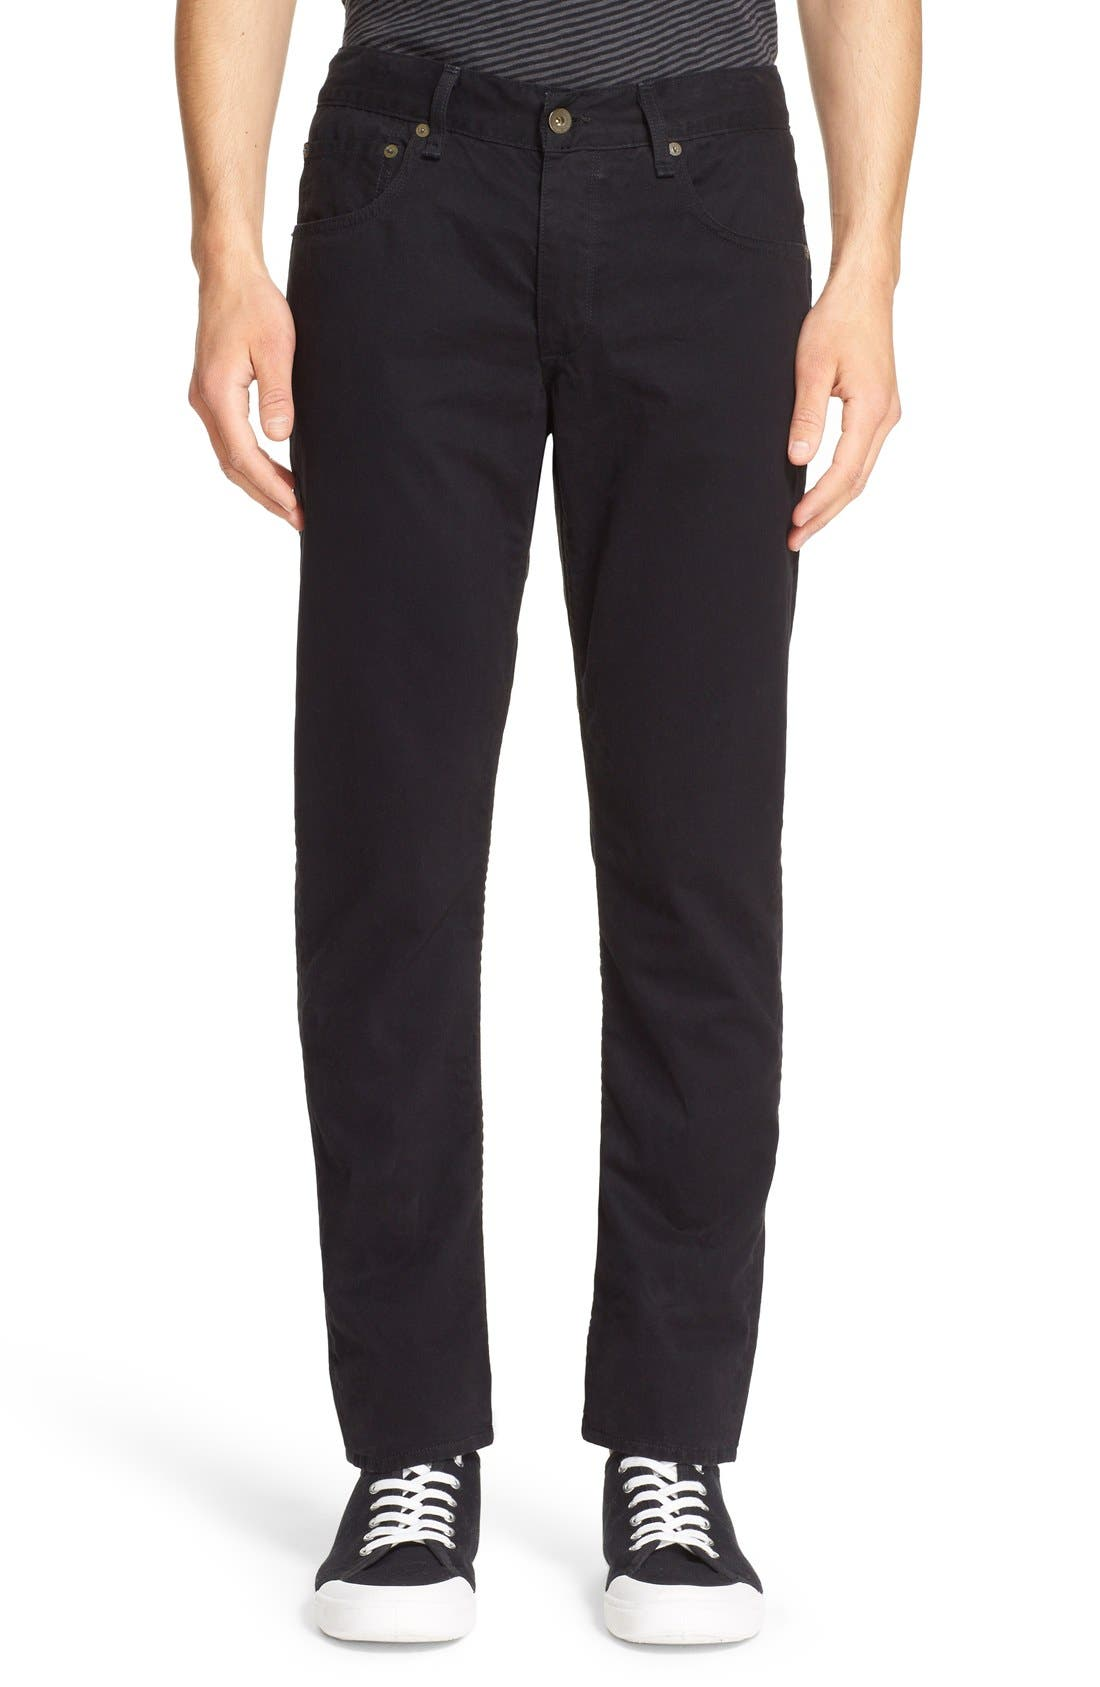 Alternate Image 1 Selected - rag & bone 'Fit 2' Cotton Twill Pants (Nordstrom Exclusive)